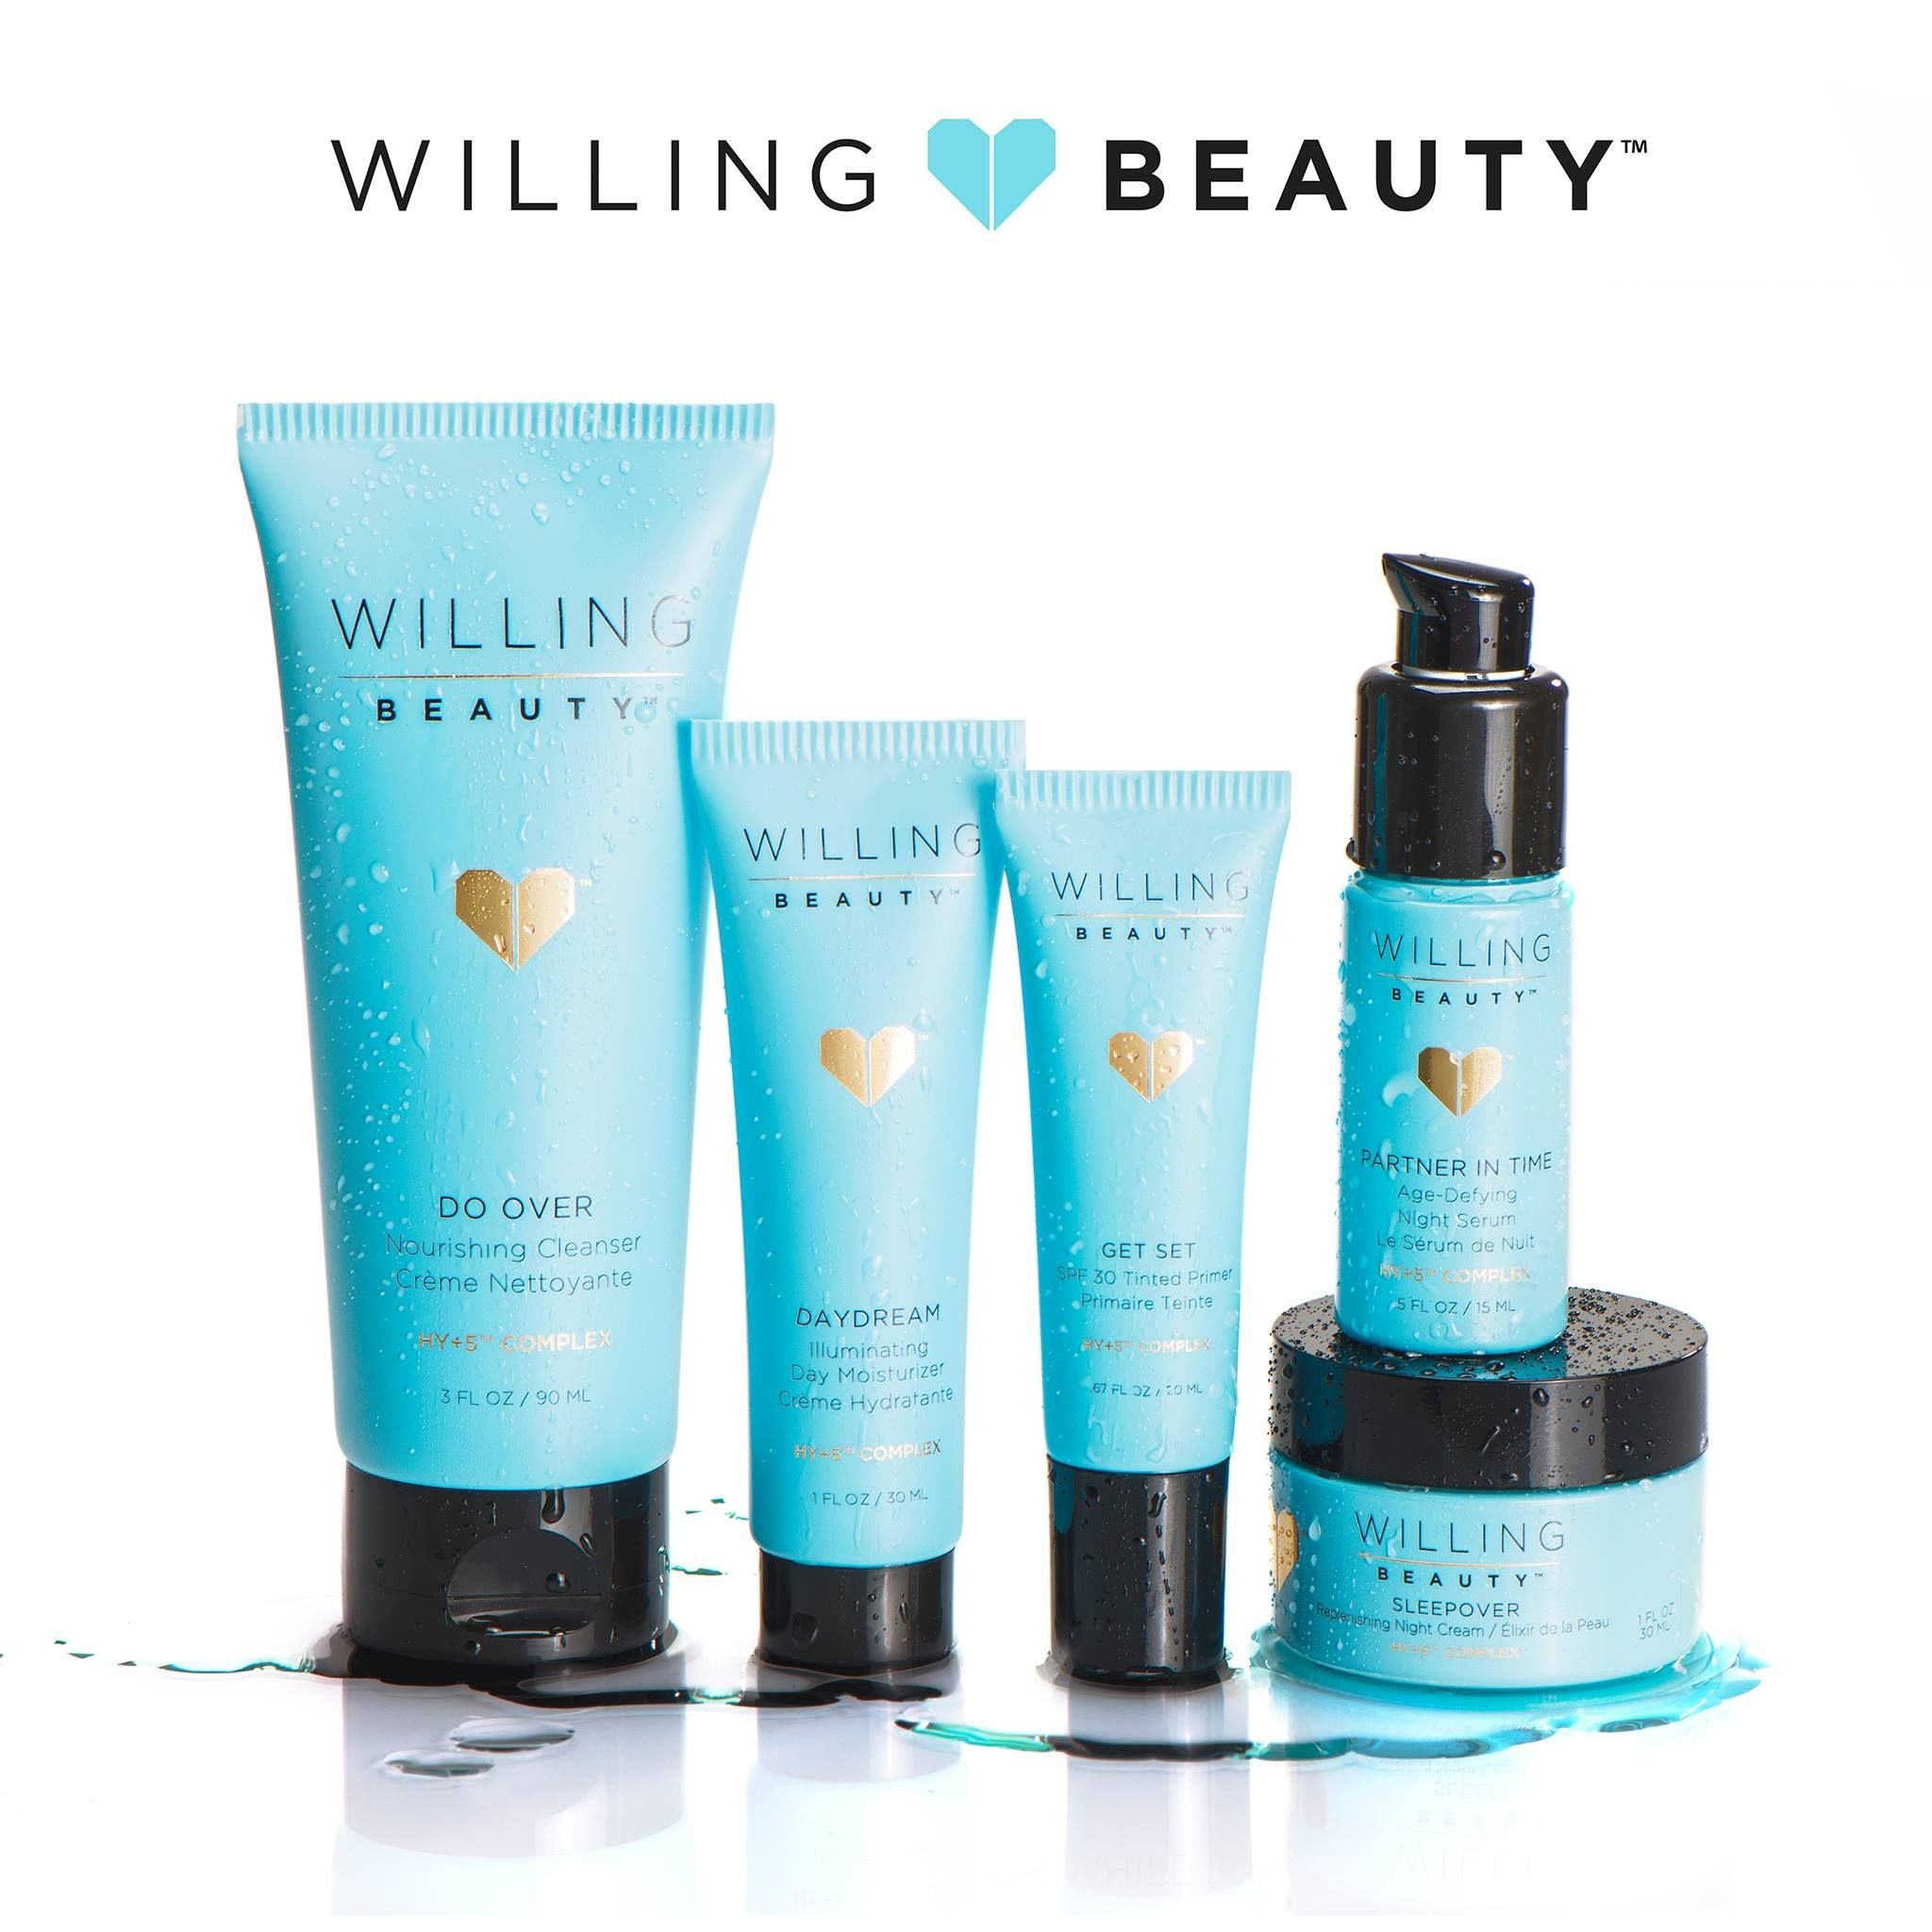 The willing beauty daily regimen features five unique products